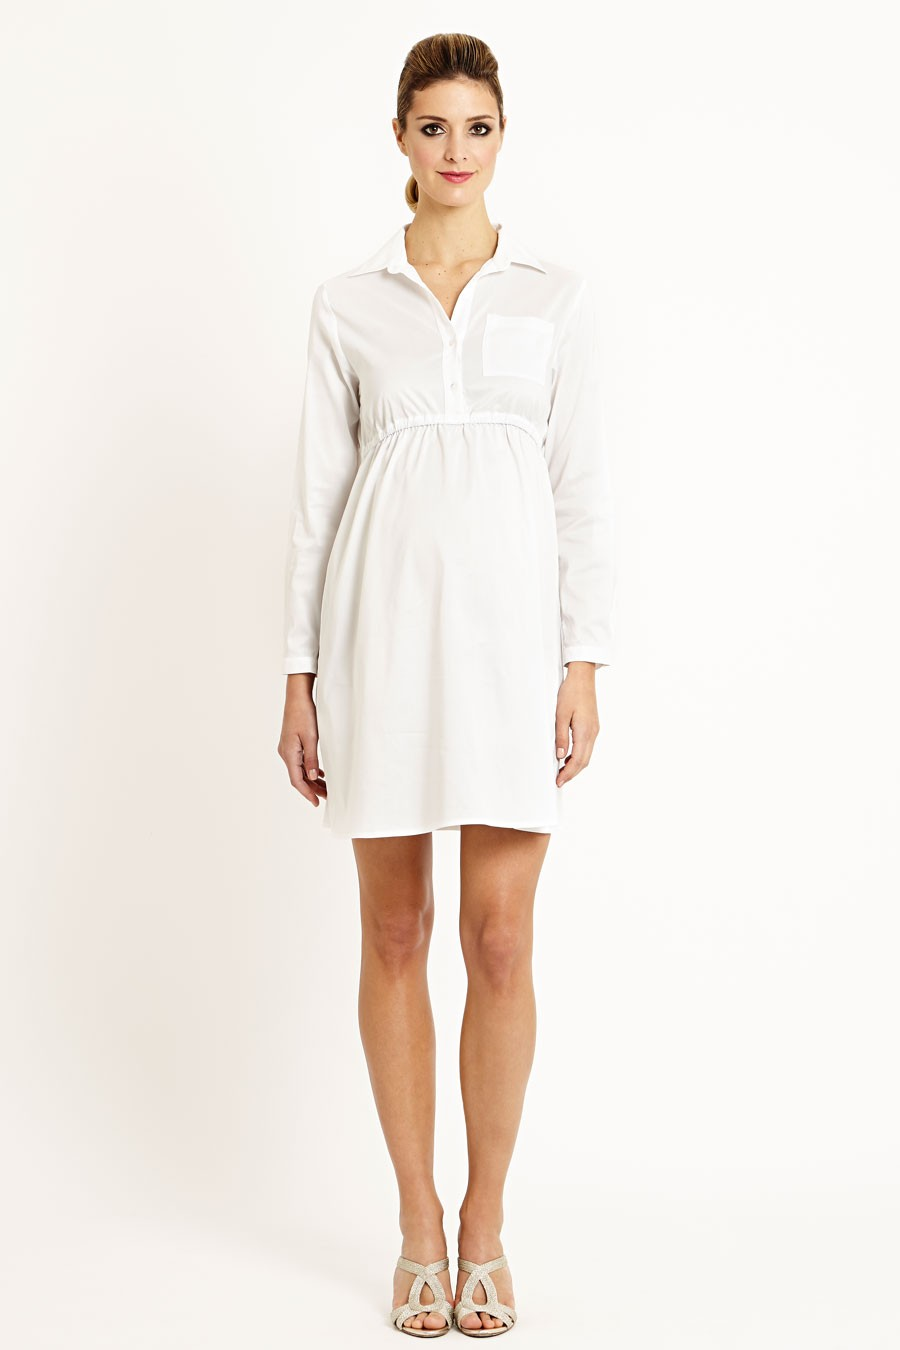 Bali Cotton Shirt Dress In Blue And White Stripes Or White